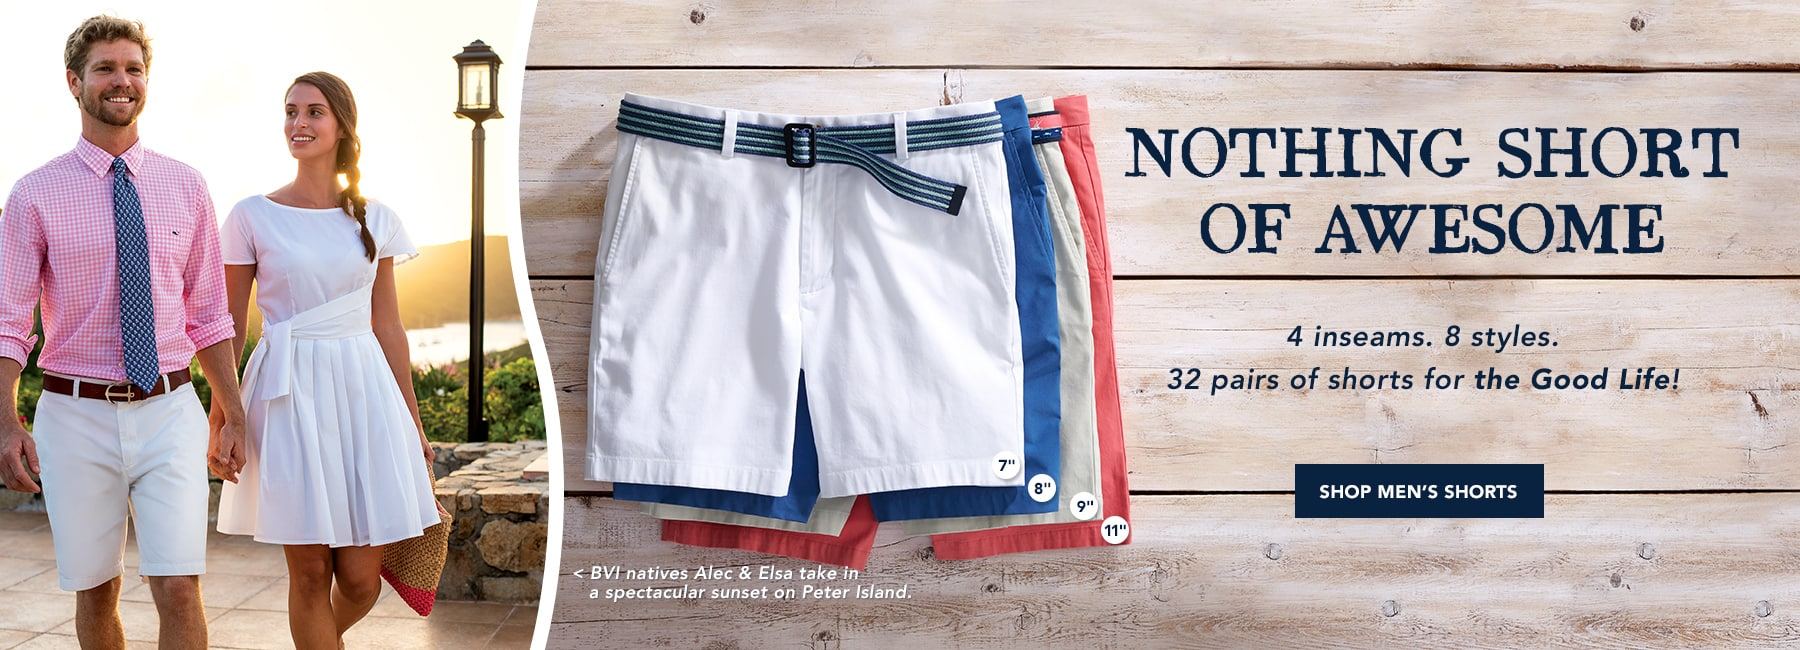 Shop men's shorts.